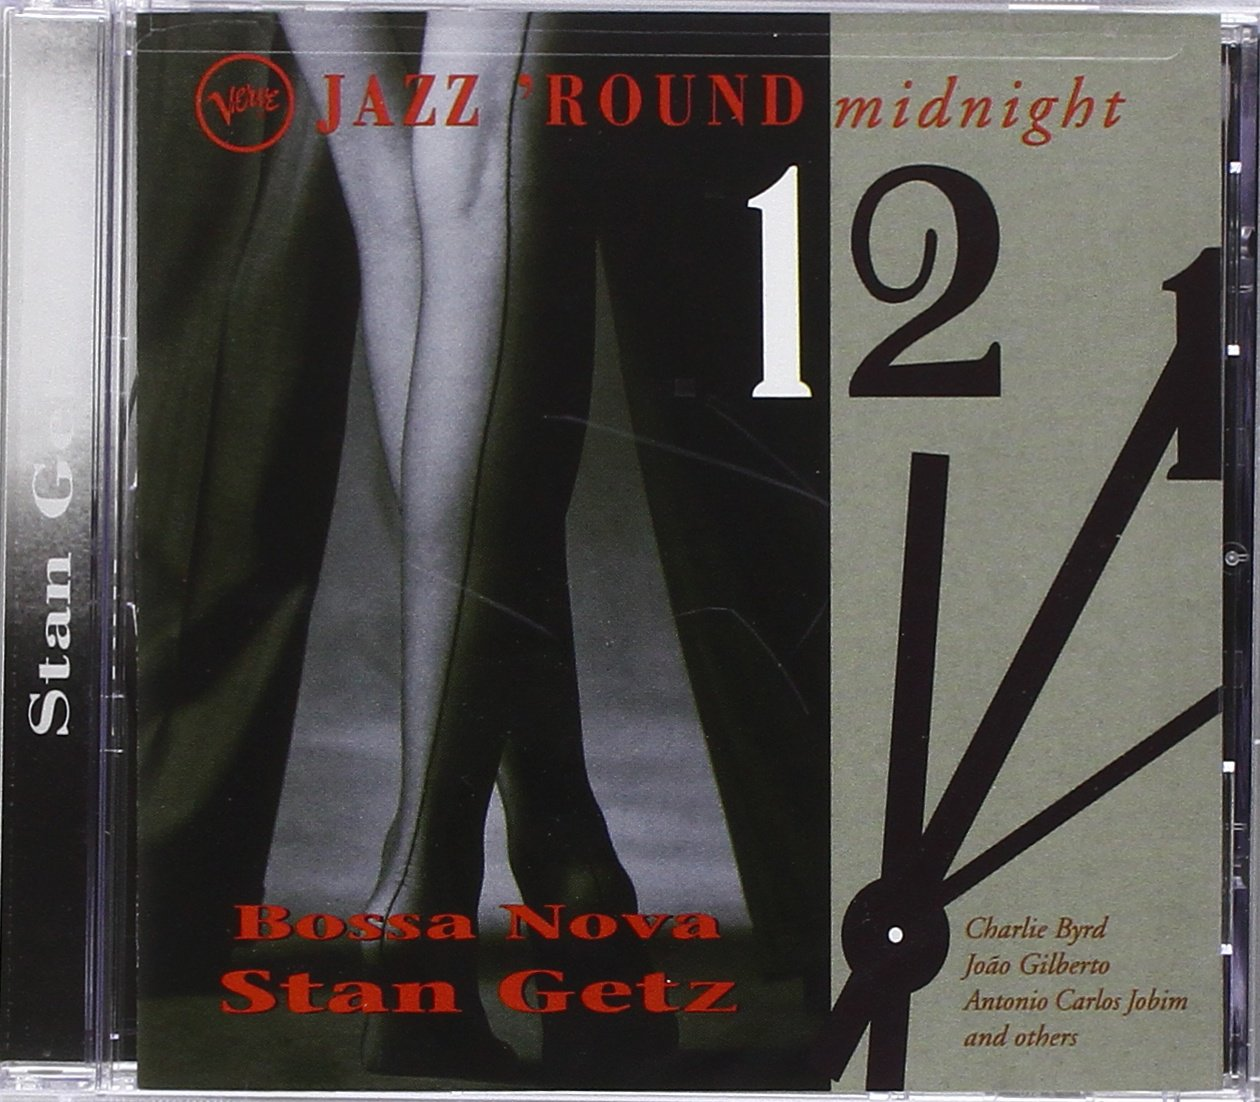 Bossa Nova - Jazz 'Round Midnight